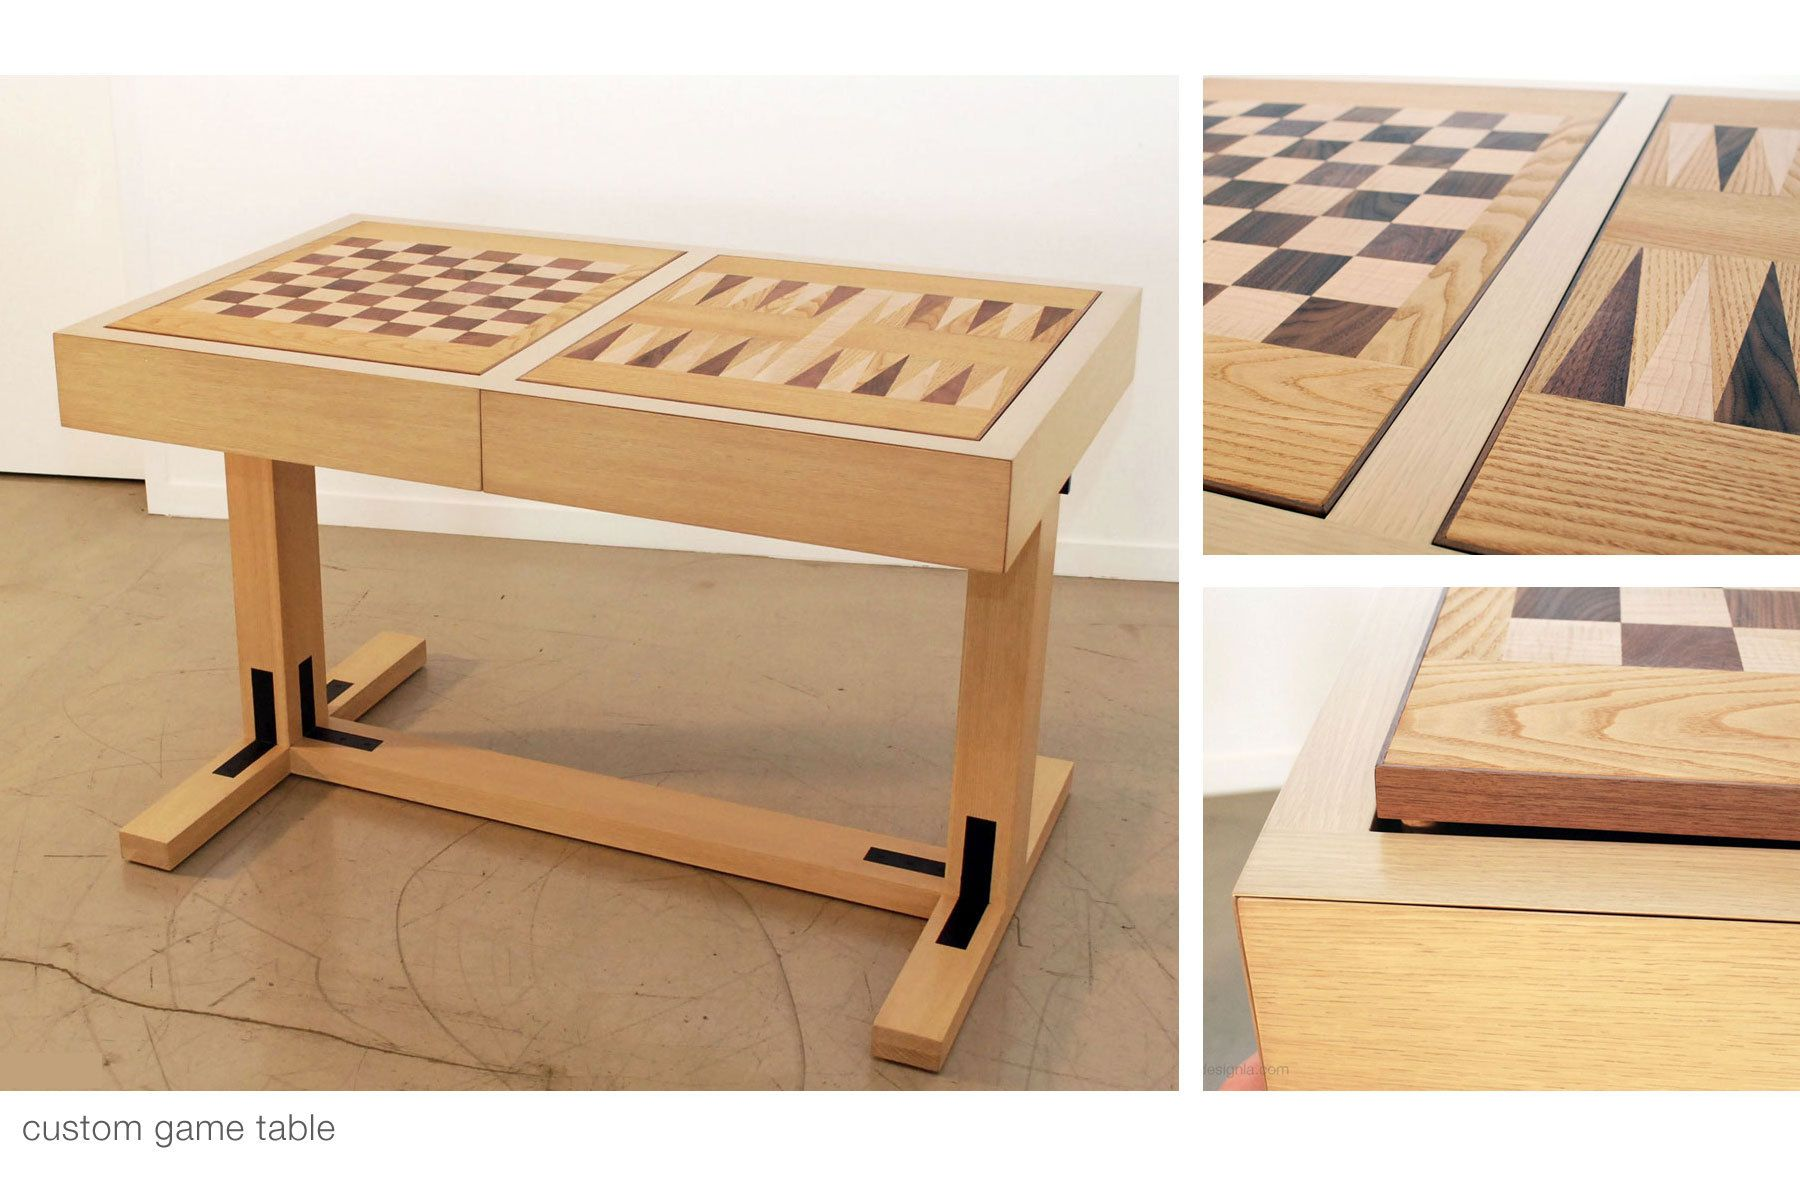 Custom Game Table with Removable Game Boards